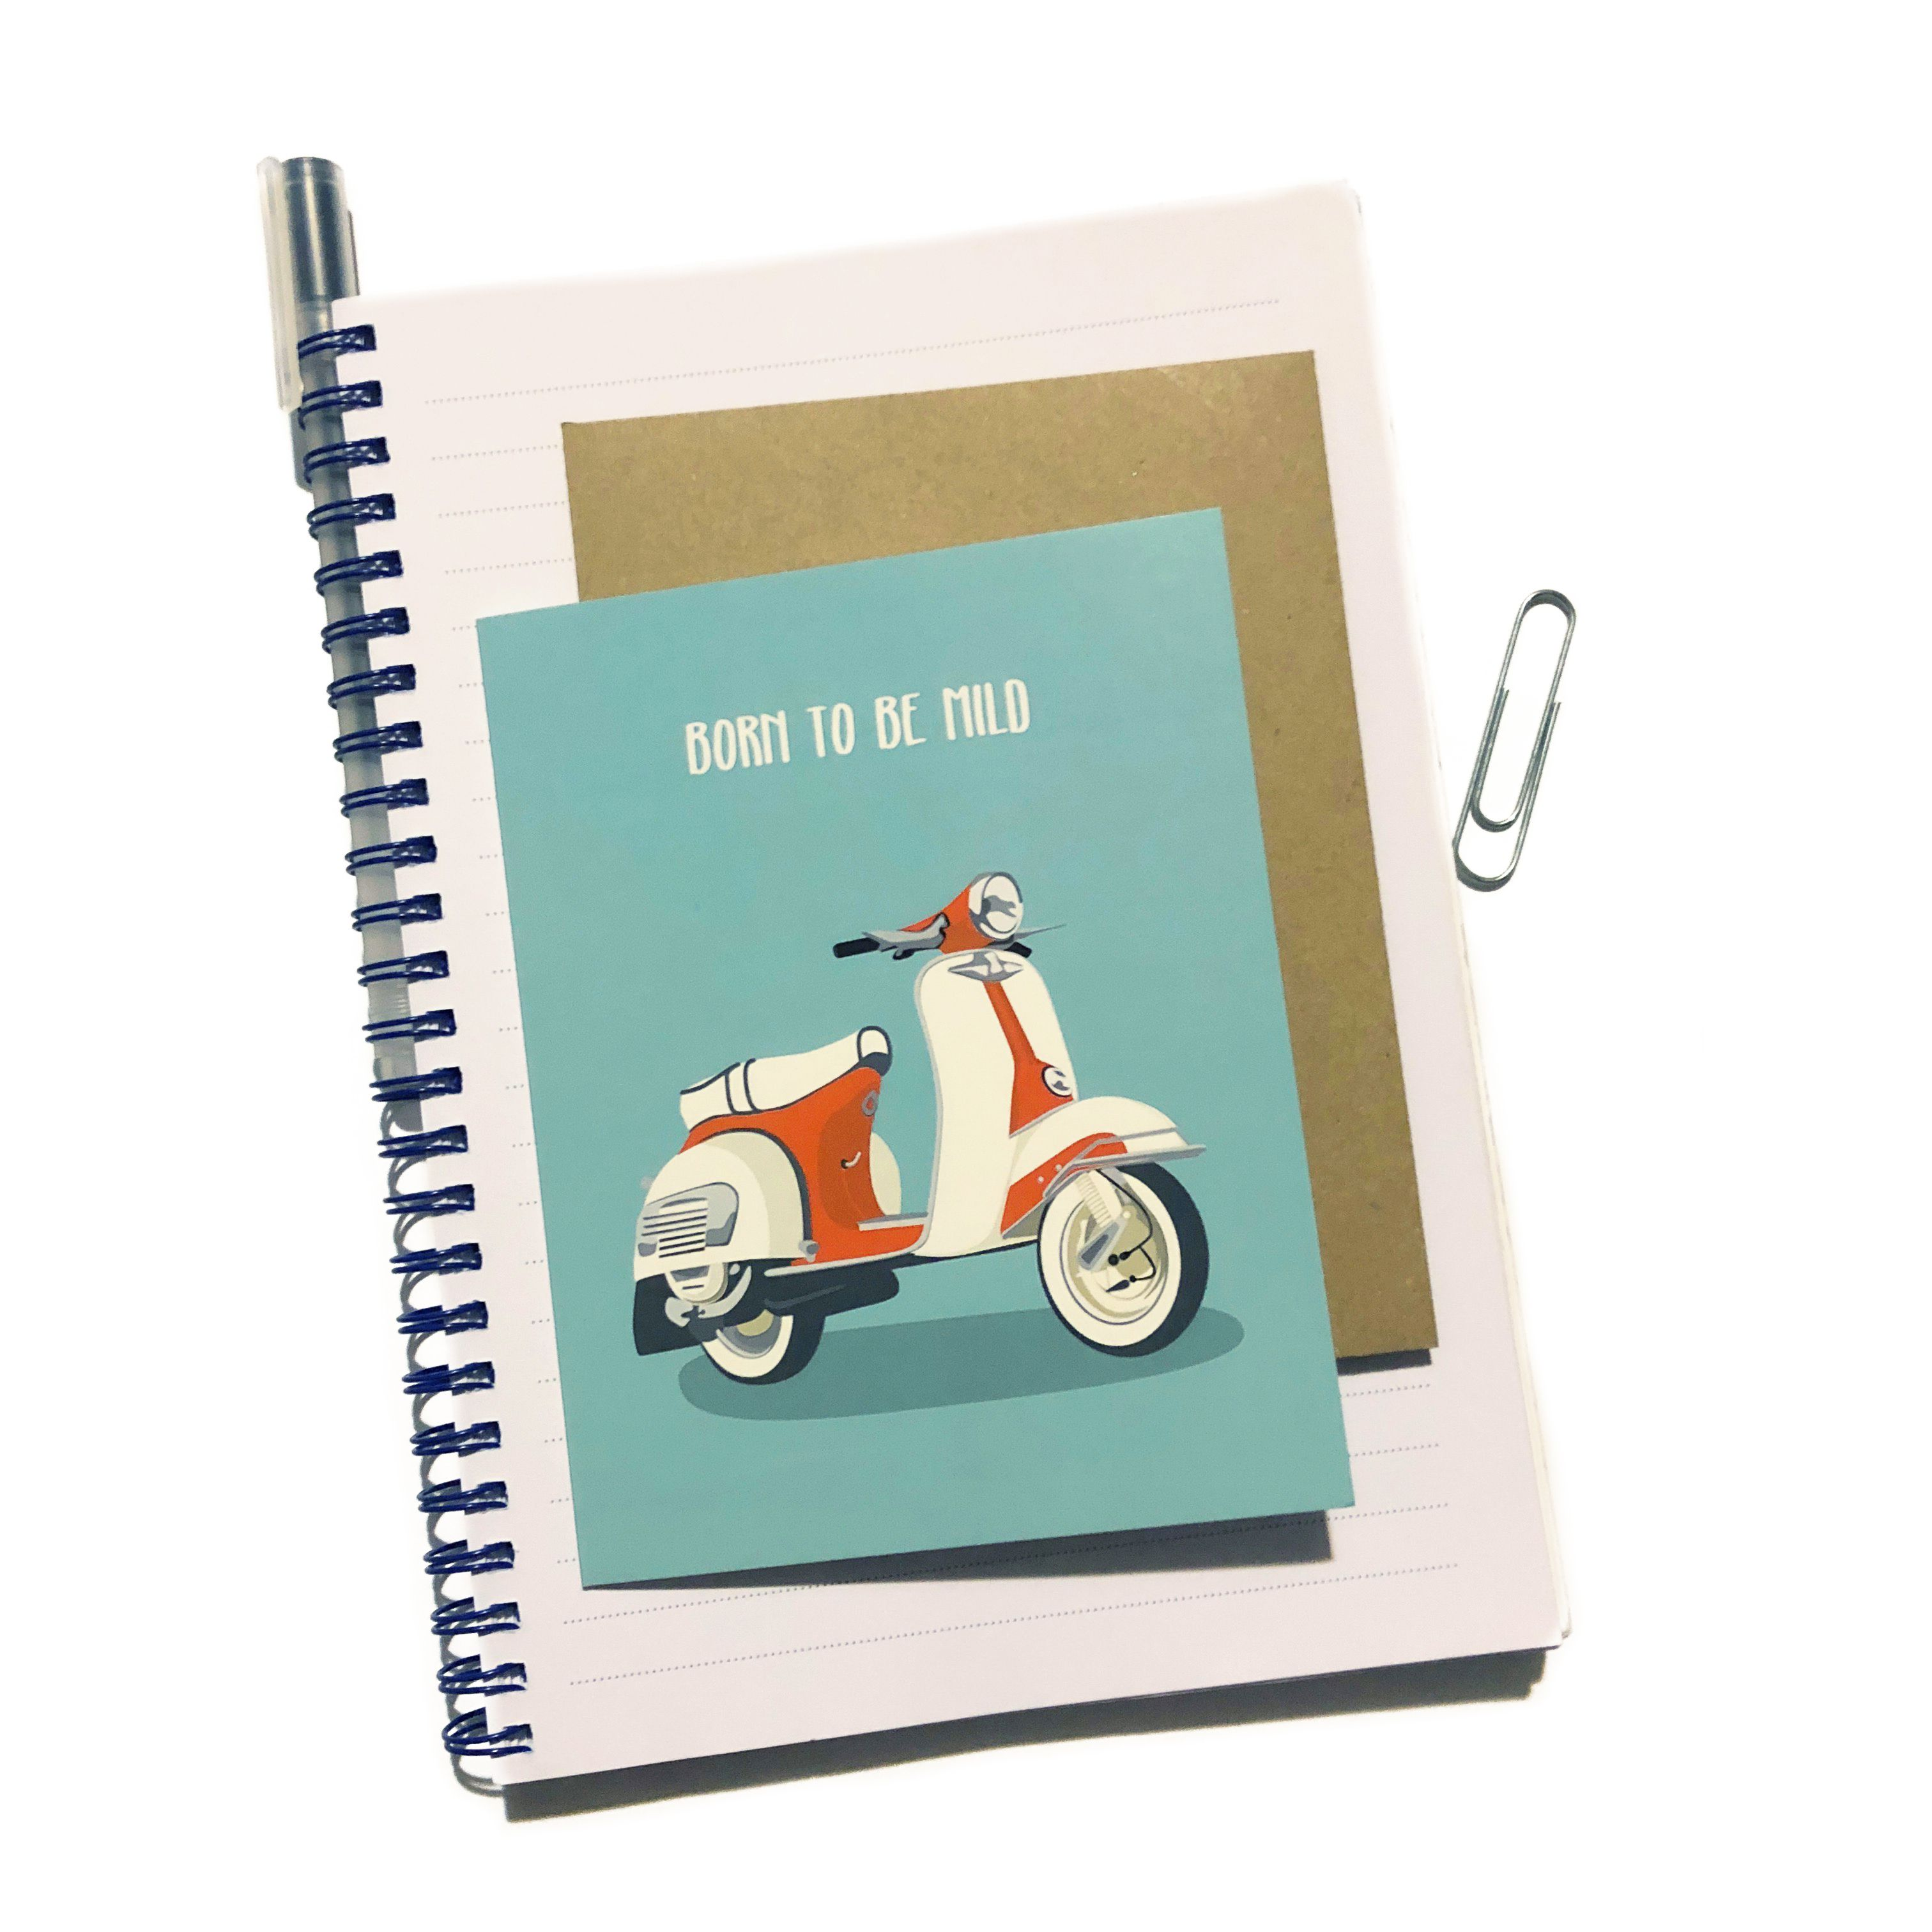 Scooter Birthday Card / Born to be Mild / Scooter